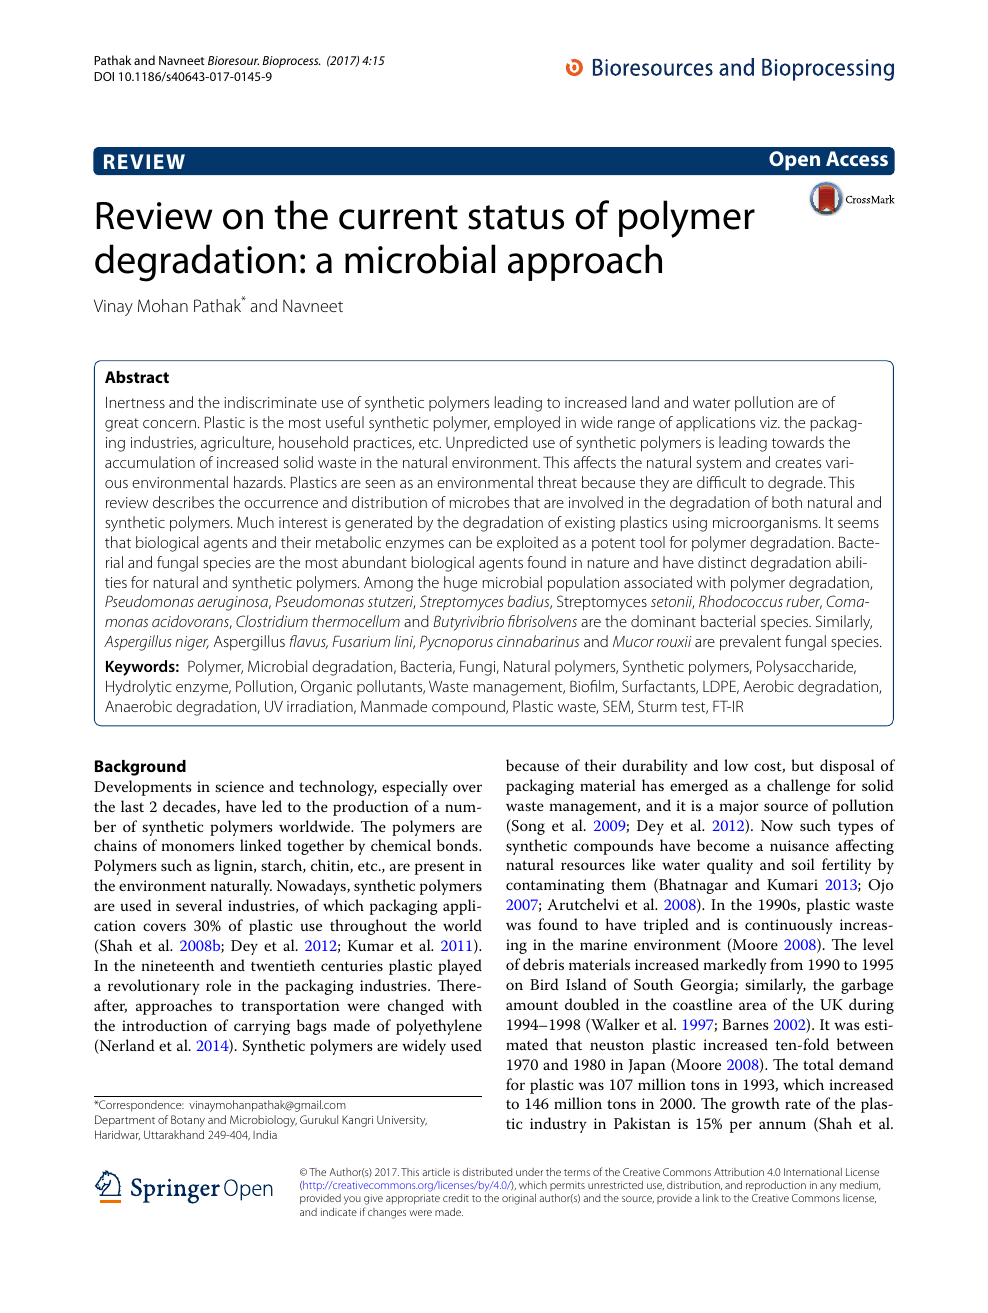 Review on the current status of polymer degradation: a